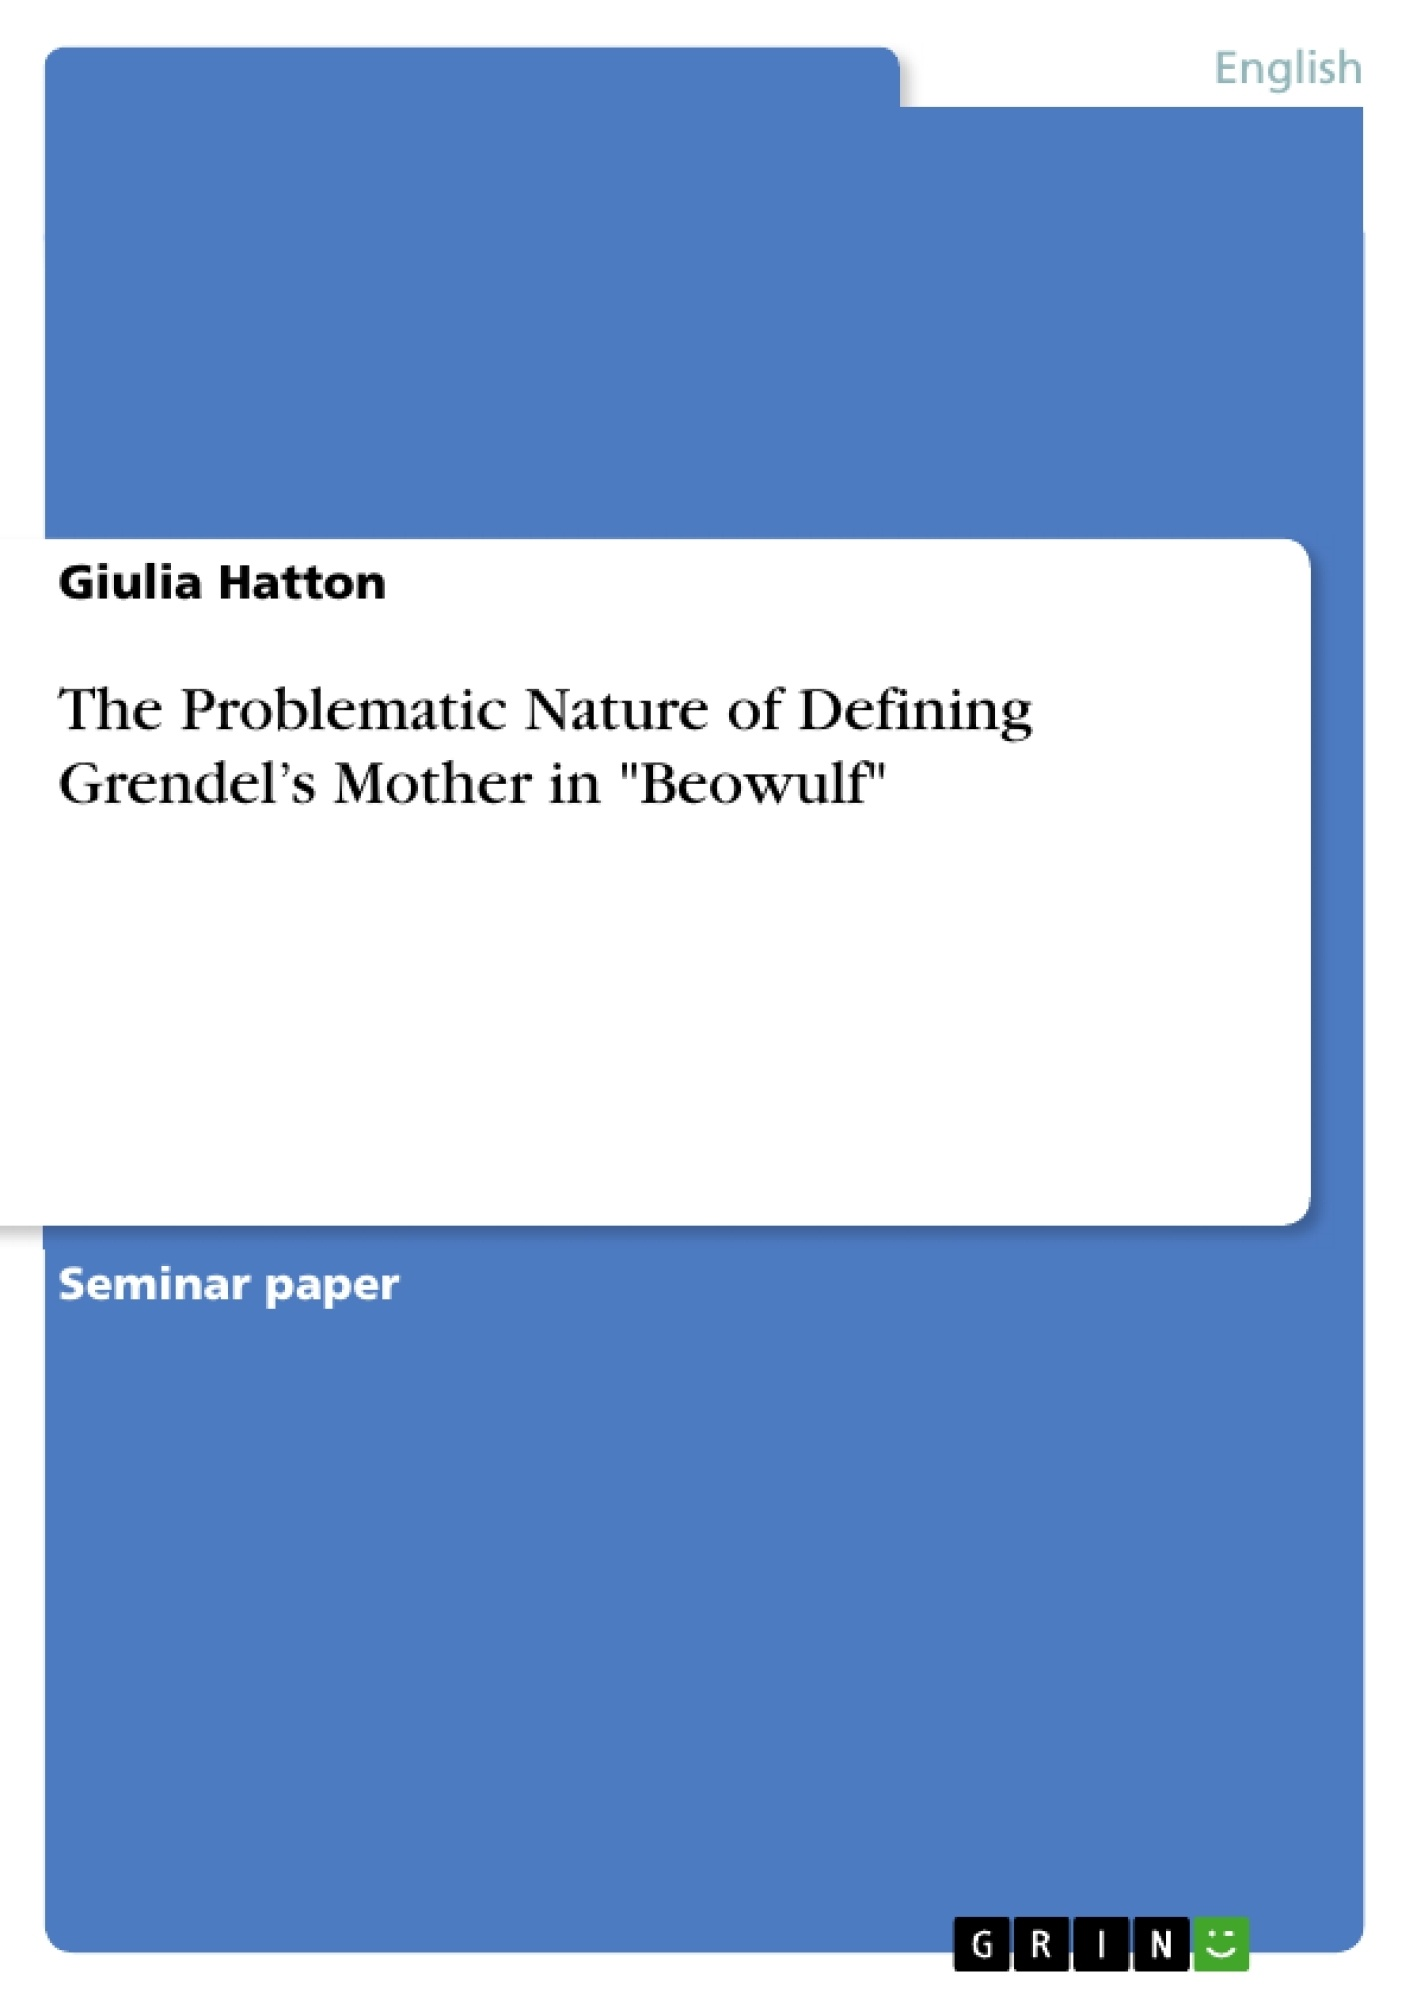 the problematic nature of defining grendel s mother in beowulf the problematic nature of defining grendel s mother in beowulf publish your master s thesis bachelor s thesis essay or term paper